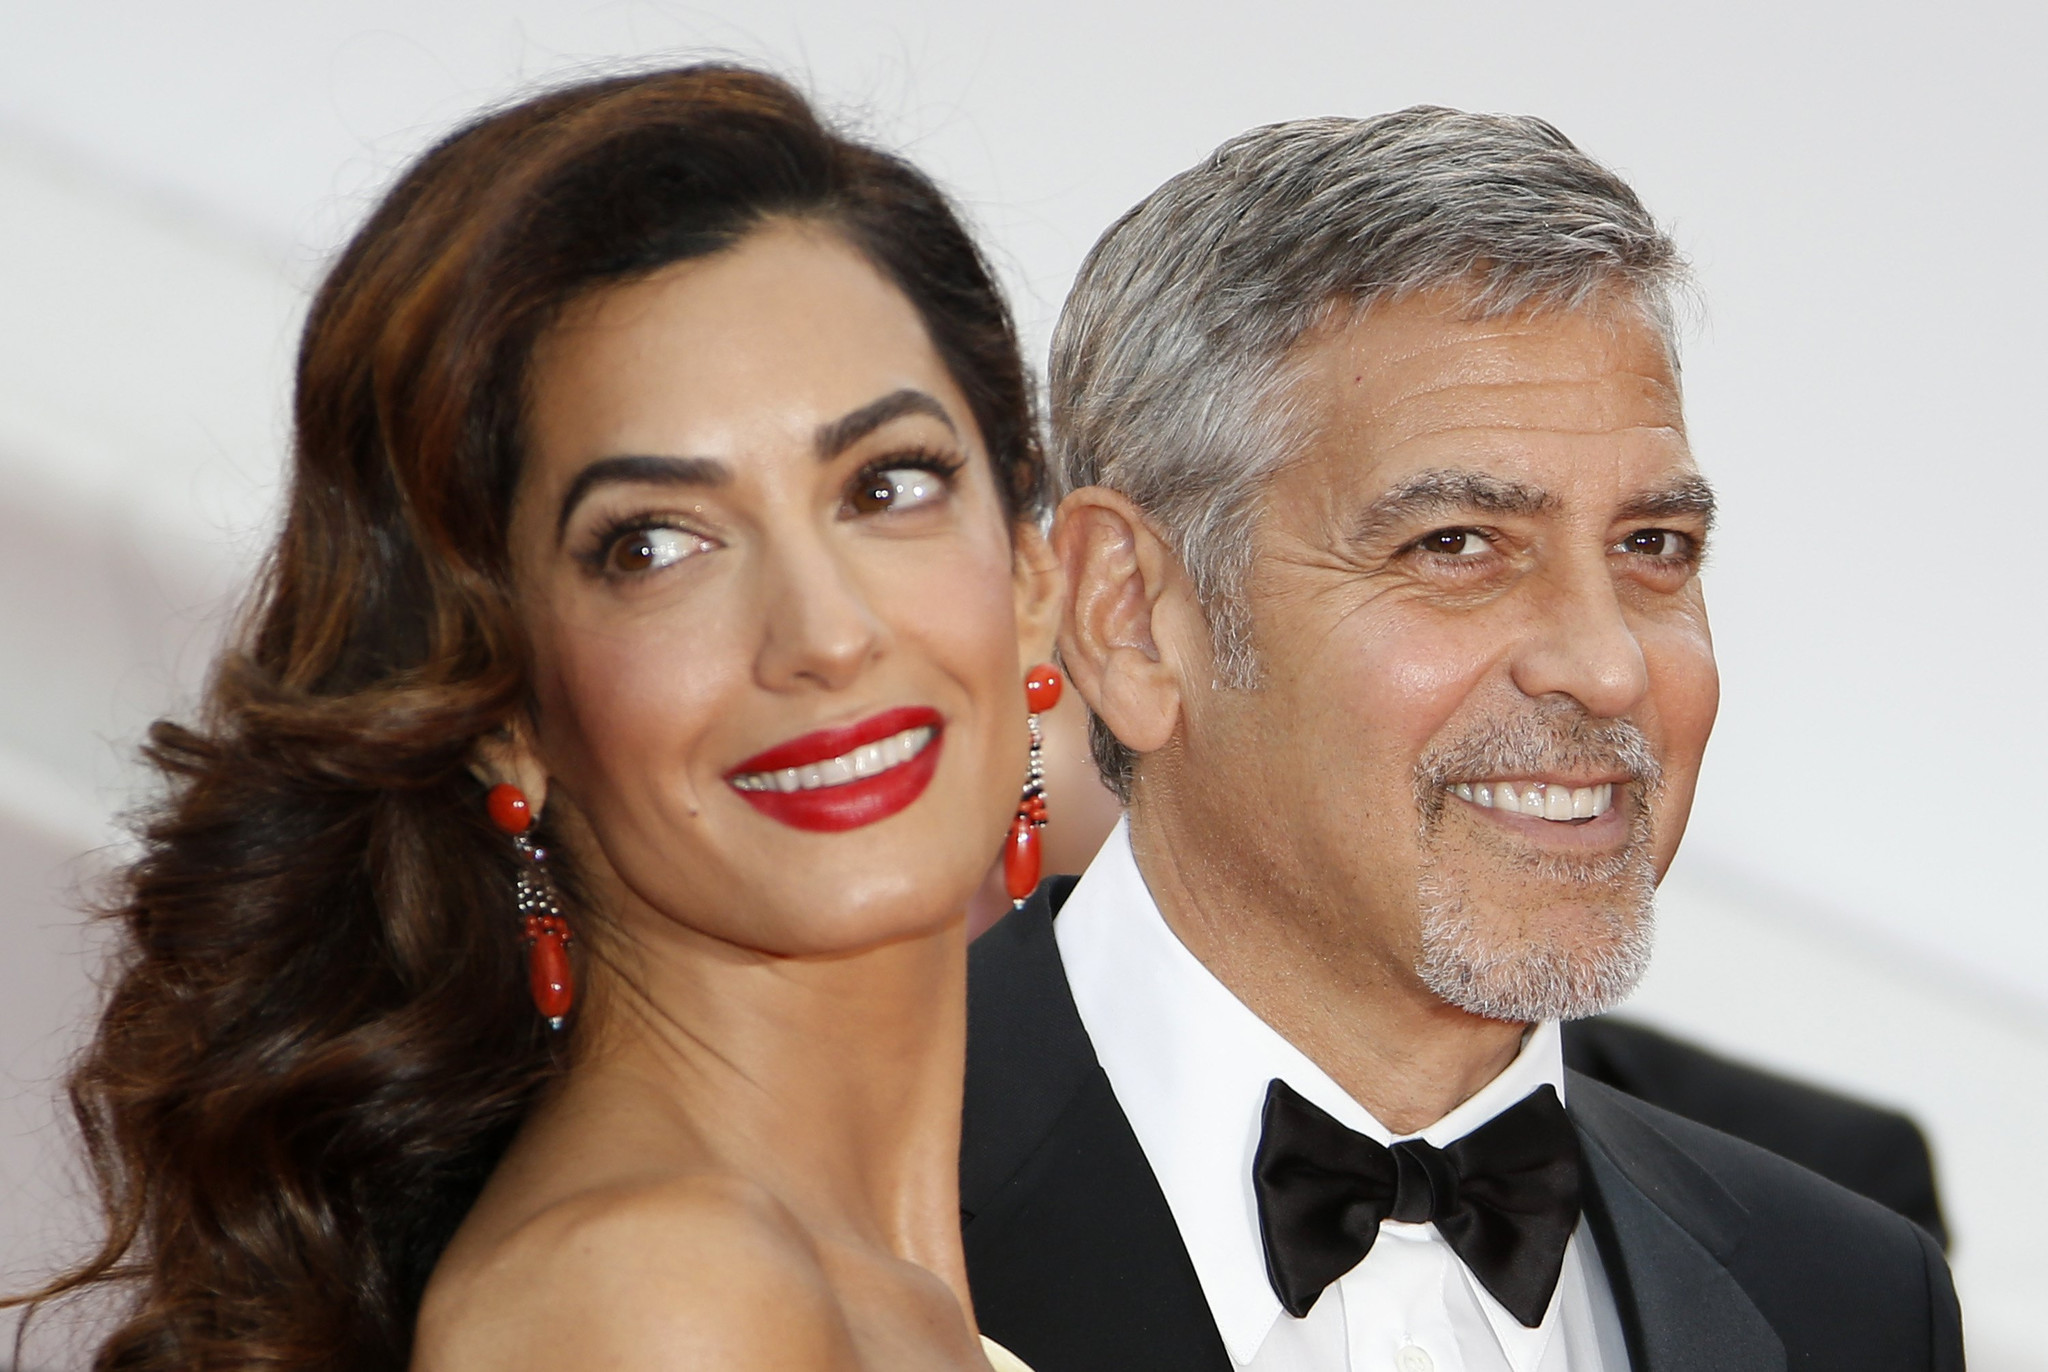 Clooneys Give $1M to Fight Domestic Extremists